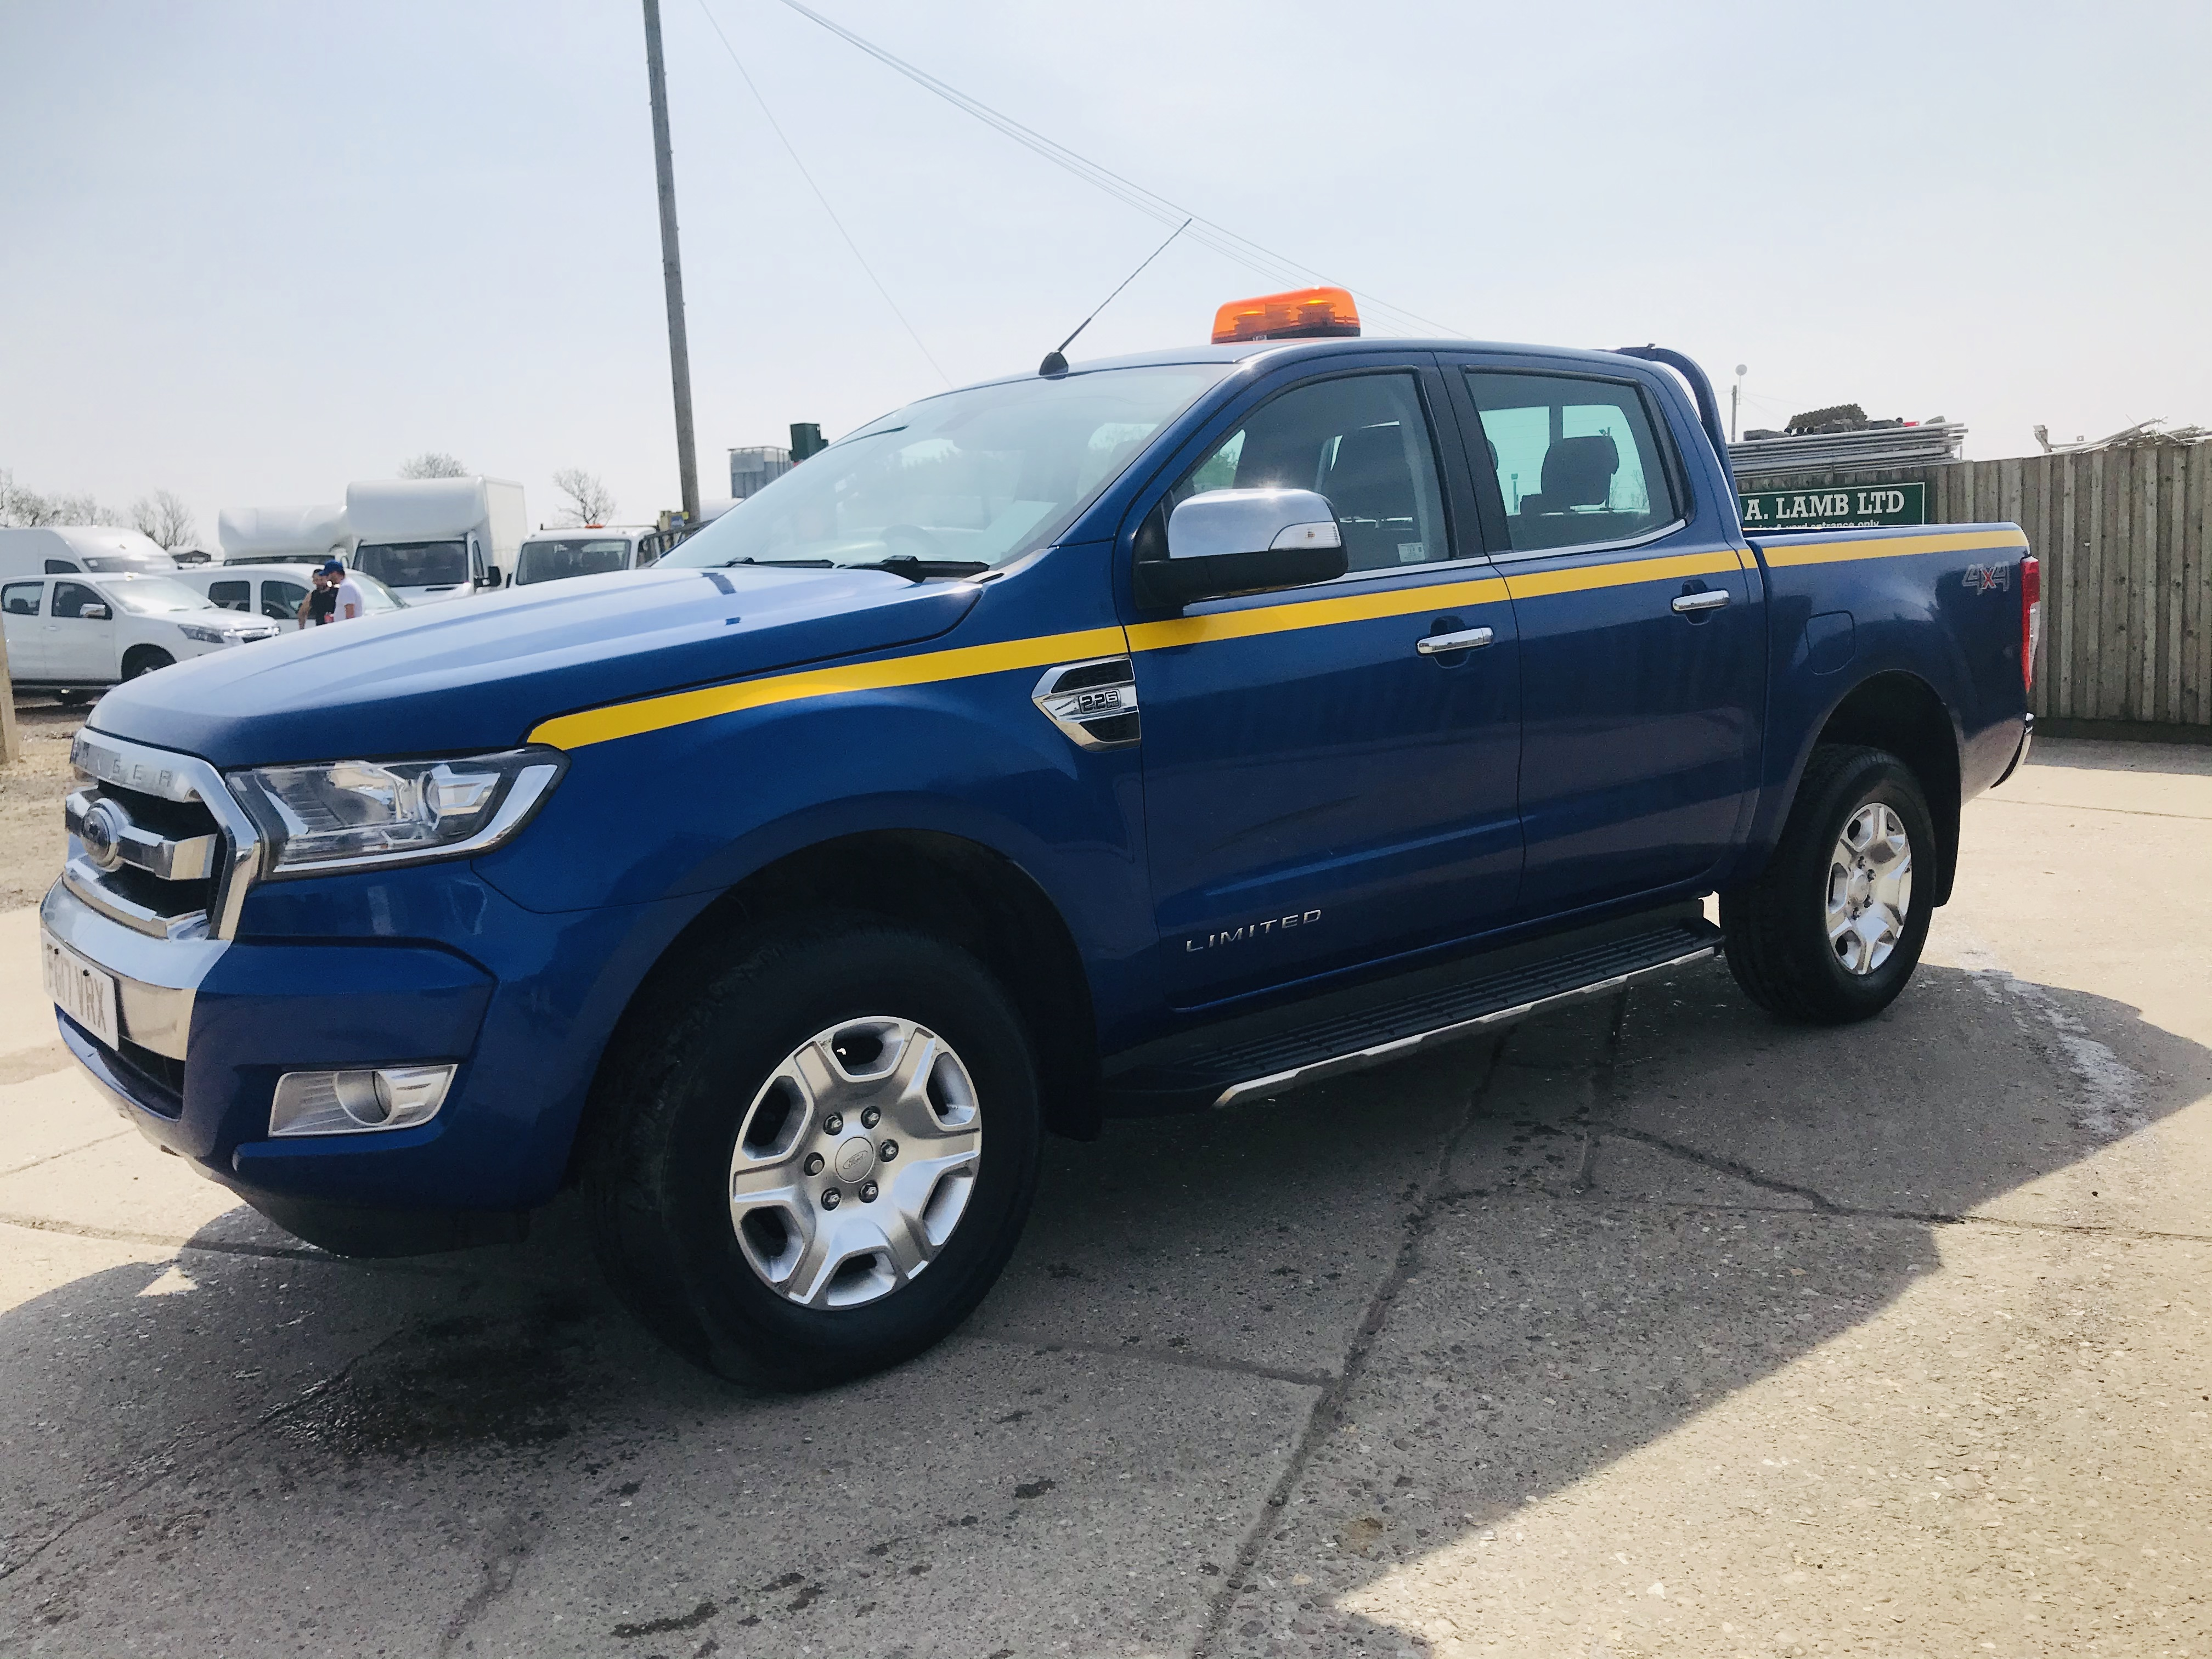 """ON SALE FORD RANGER 2.2TDCI """"LIMITED"""" D/C PICK UP (17 REG) 1 OWNER FSH - FULL LEATHER - CLIMATE & AC - Image 7 of 38"""